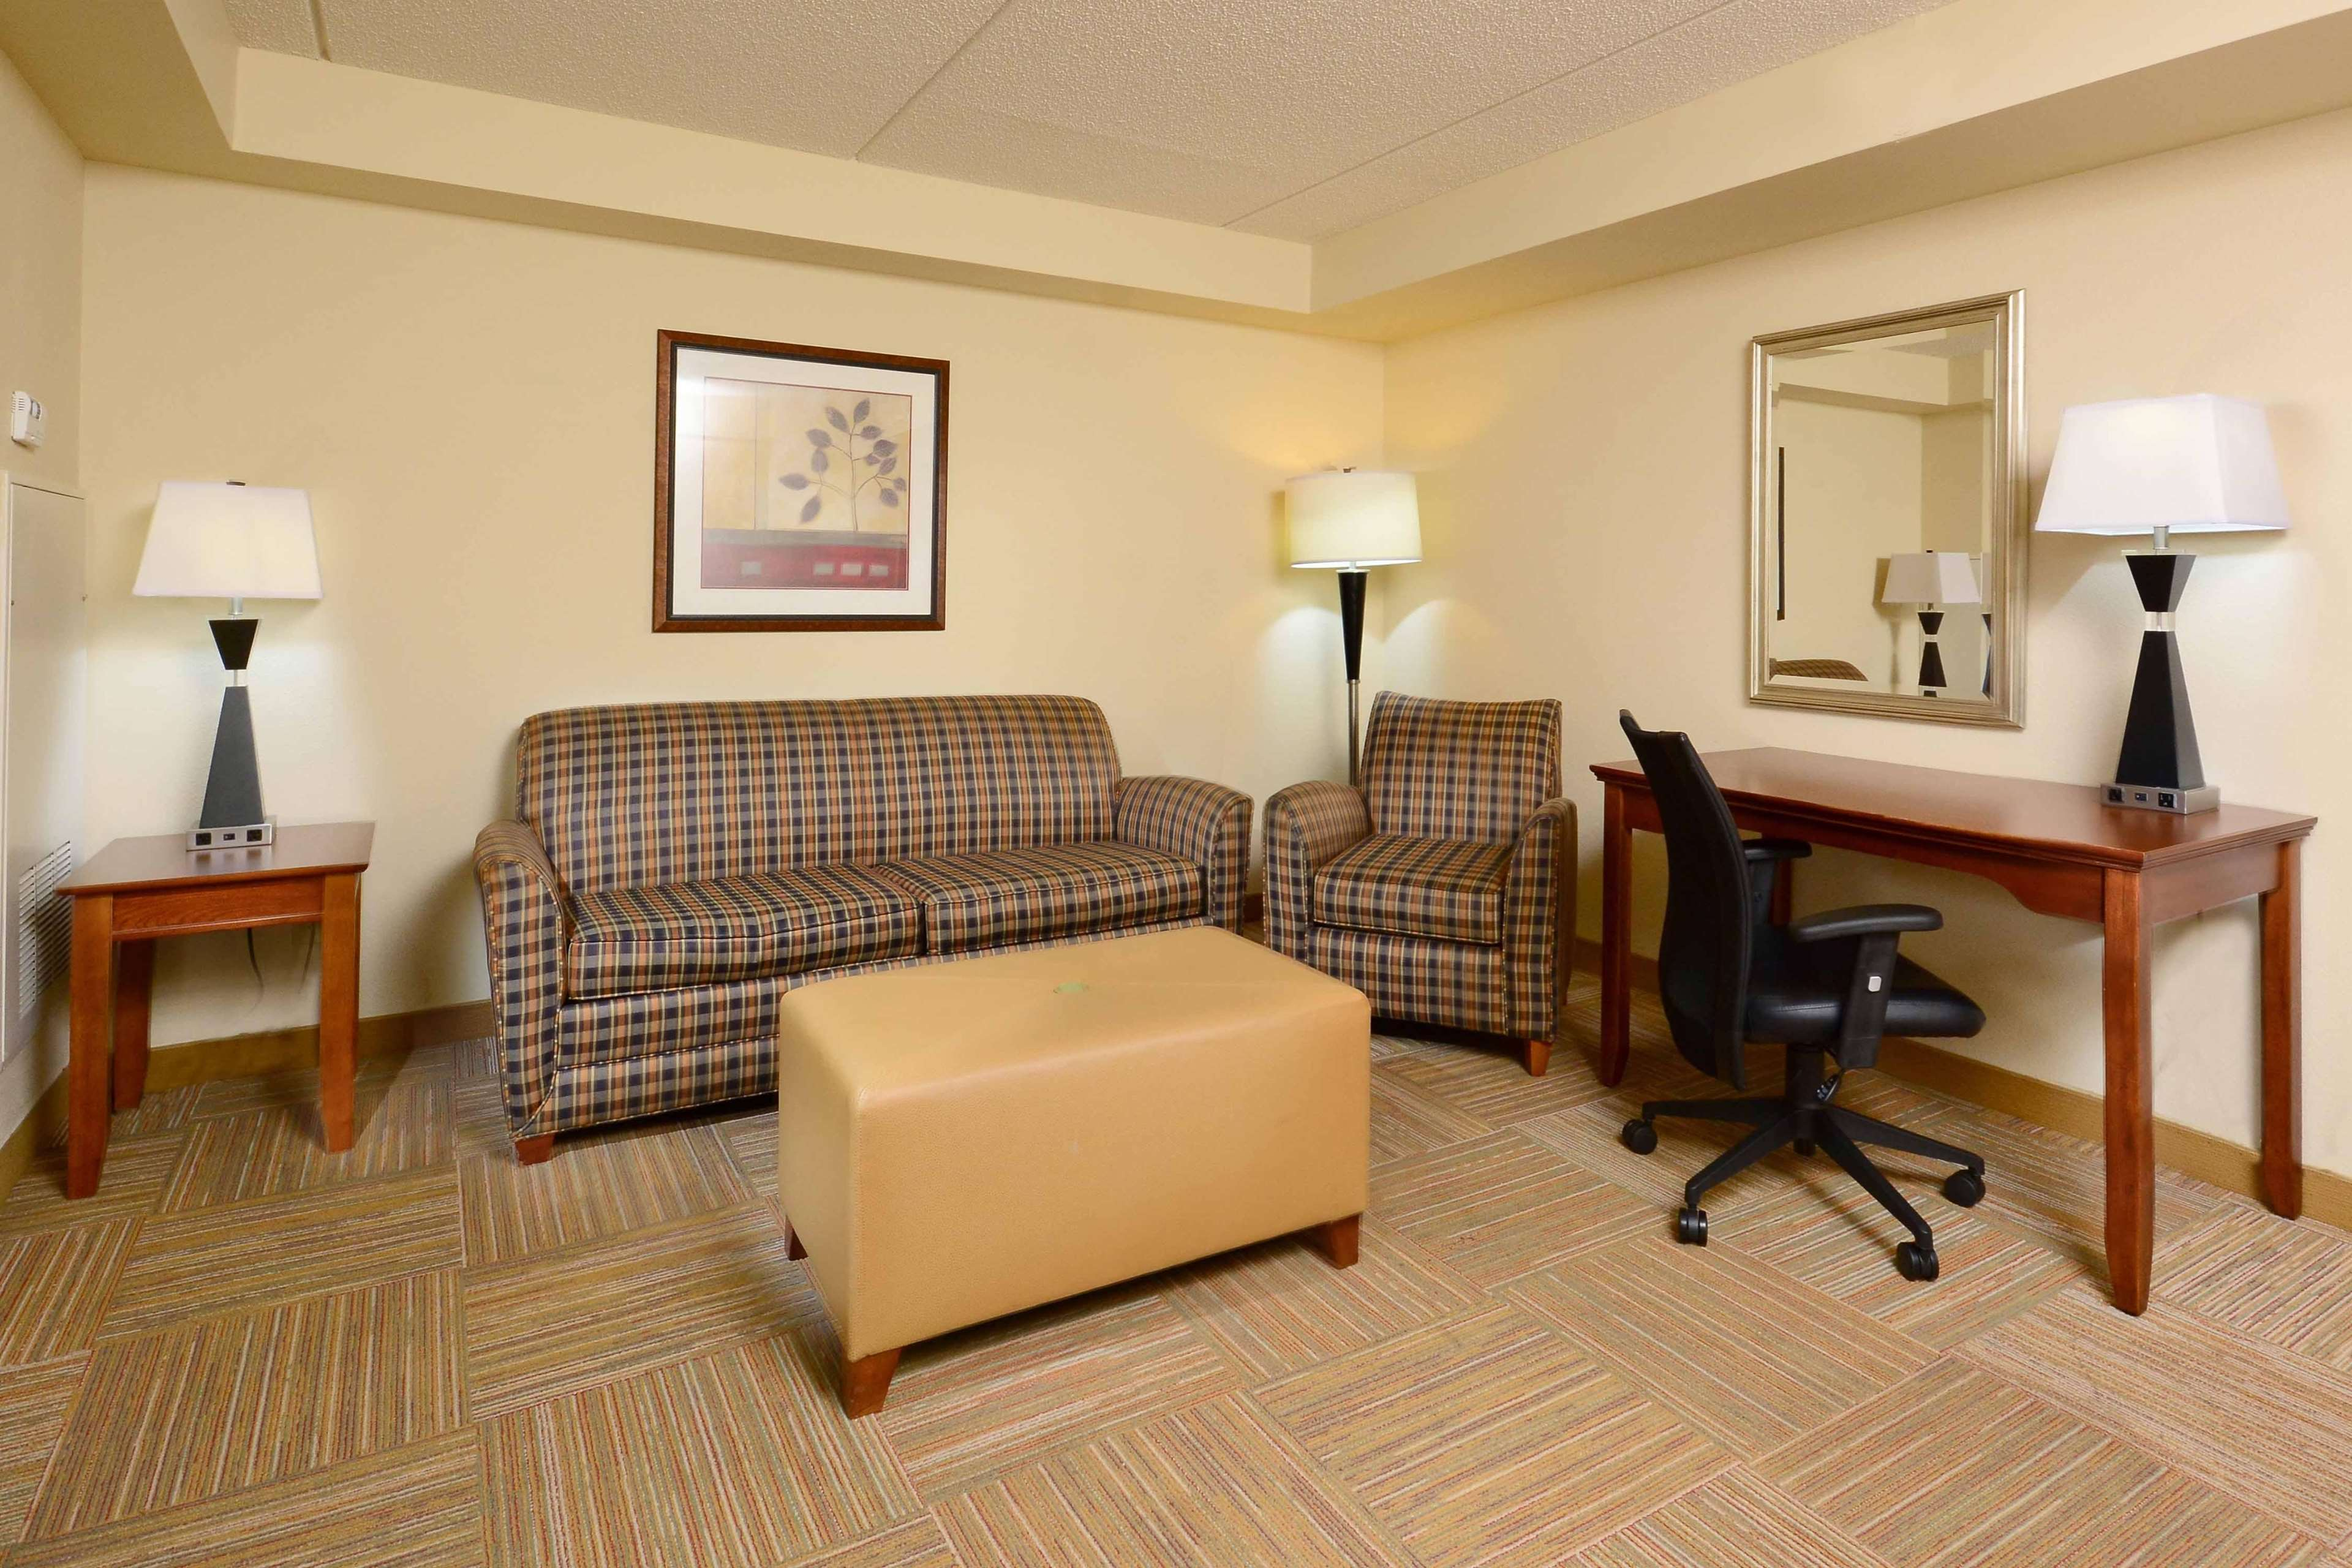 King Bed Room and Suite